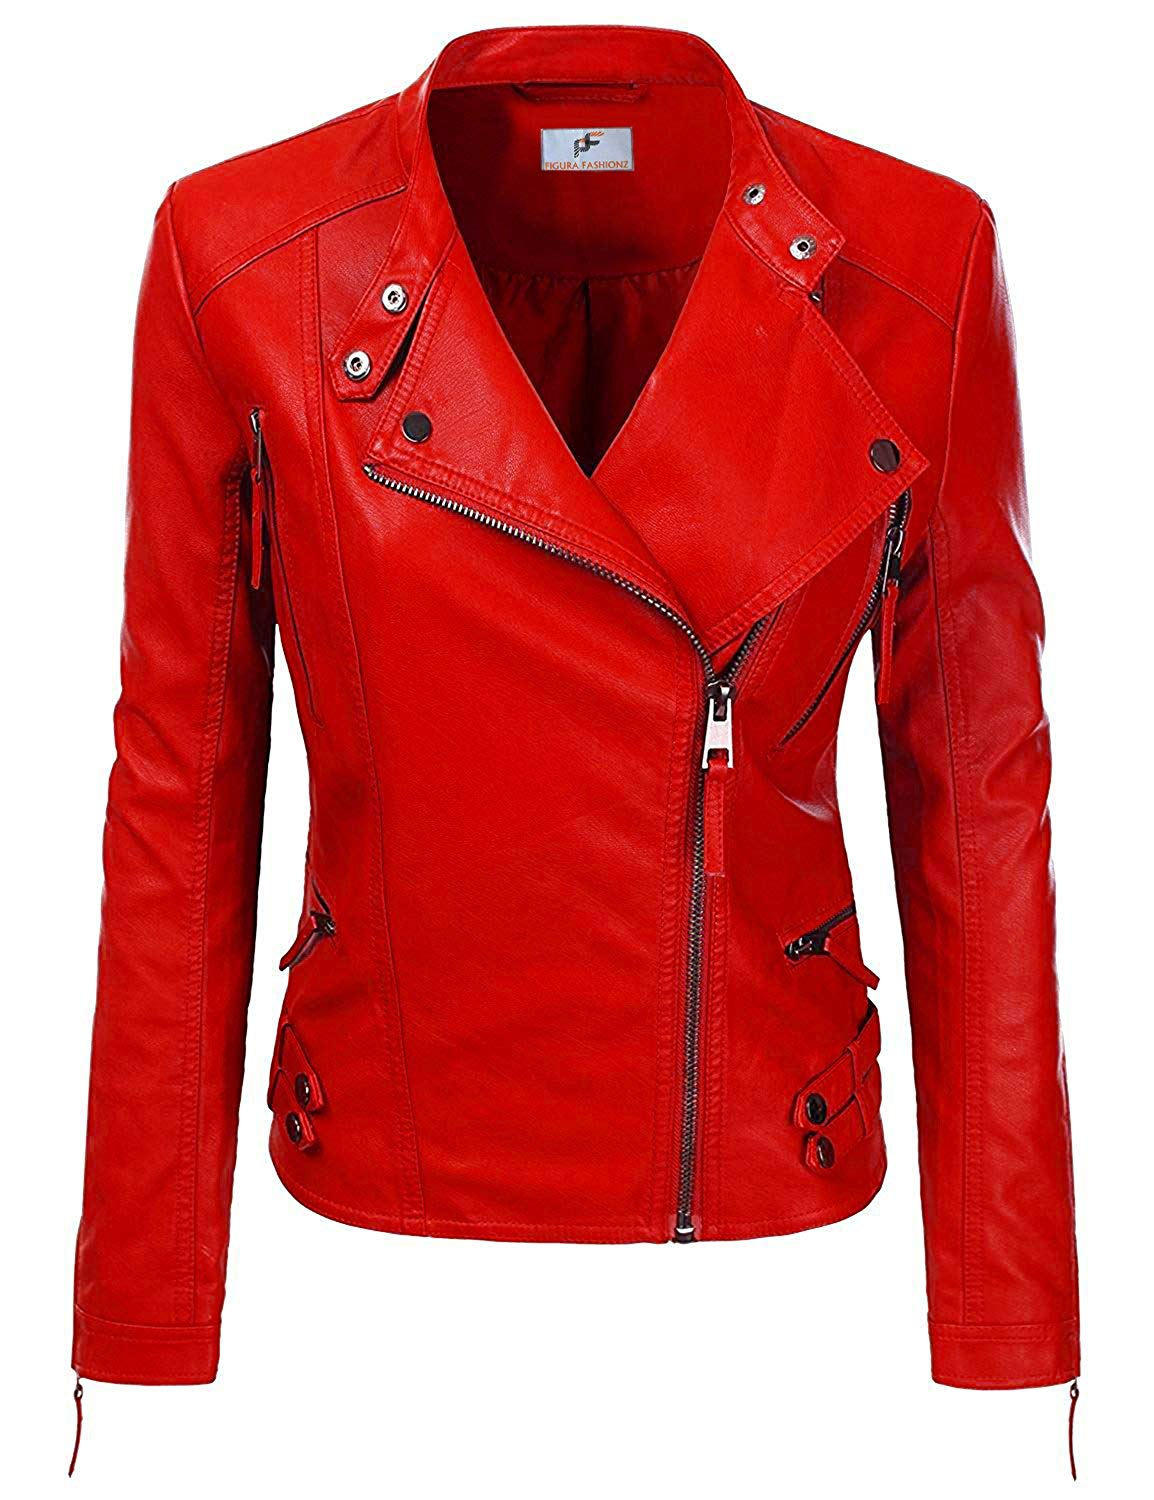 d1805fb4b07d7 Get Quotations · Figura Fashionz Faux PU Red Leather Jacket For Women - Biker  Jacket For Womens With